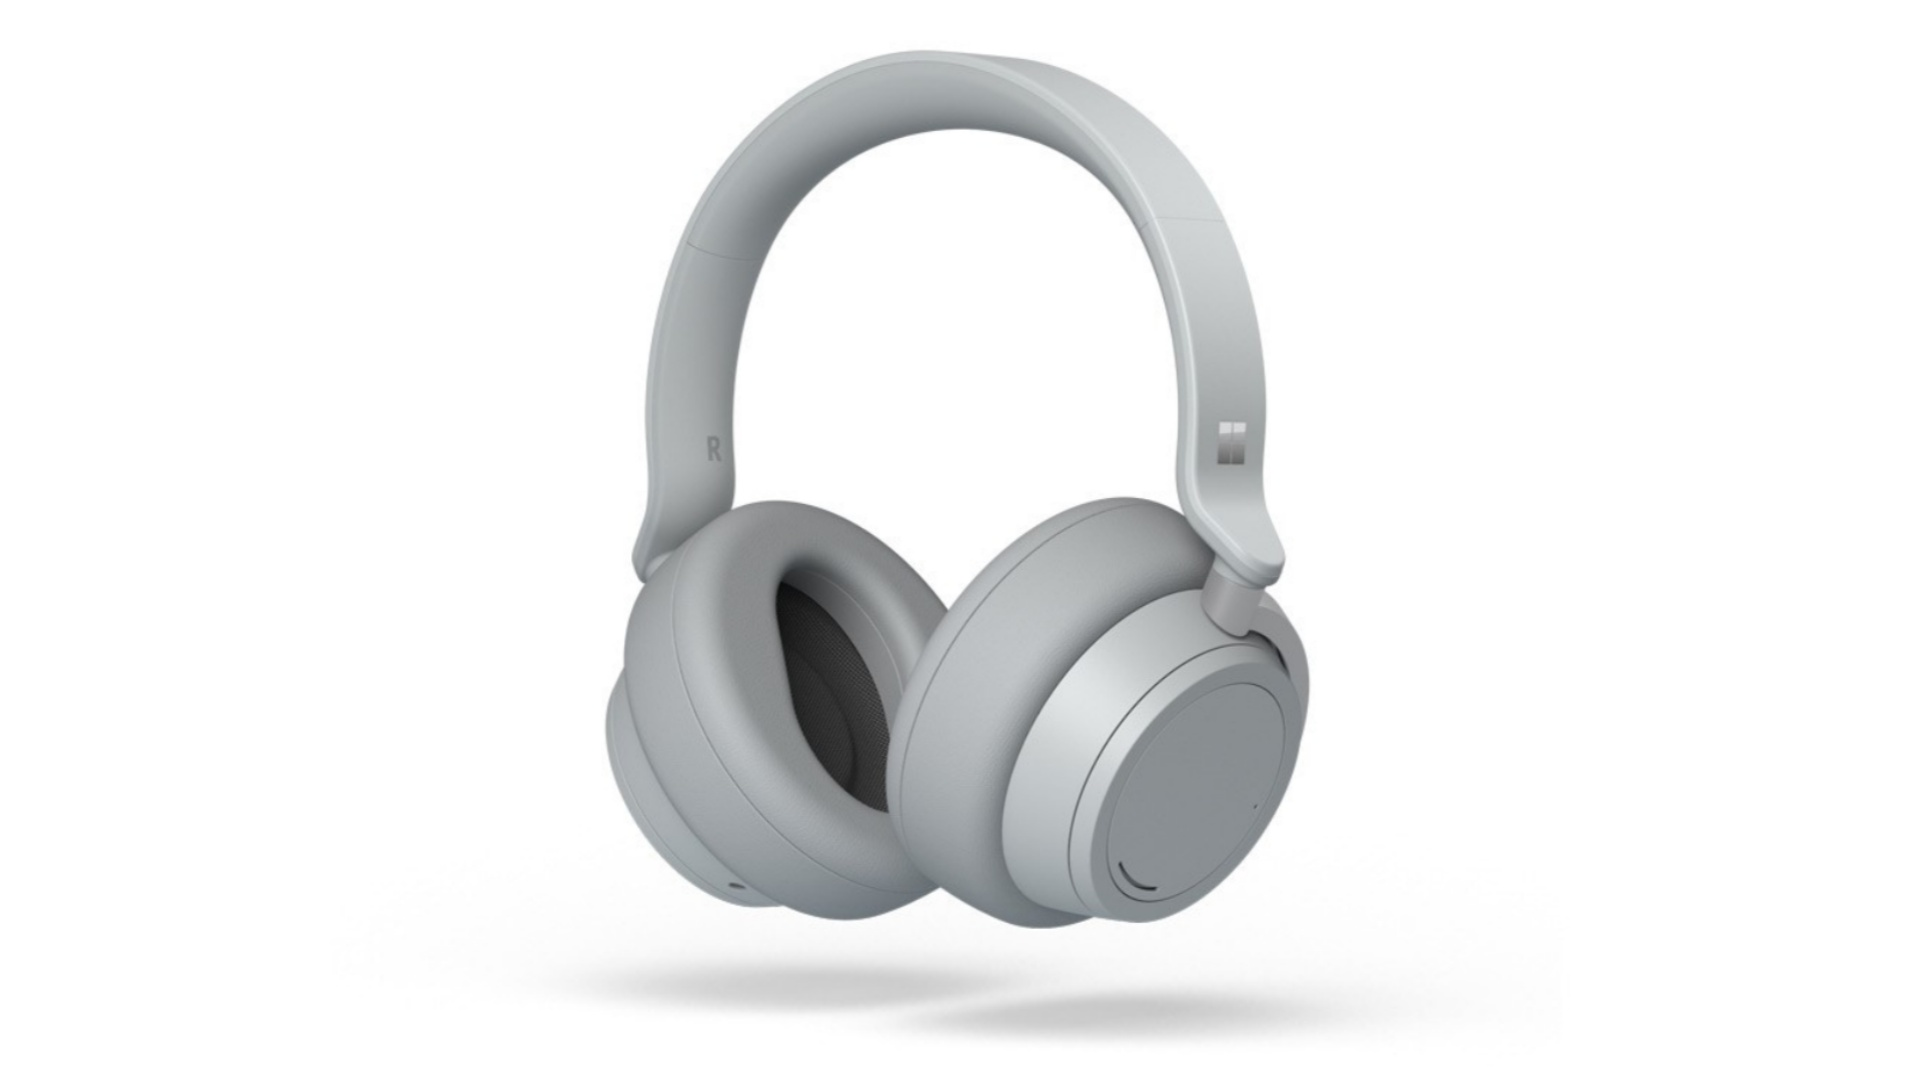 a9e3a7c1741 Microsoft introduces new noise-cancelling Surface Headphones - htxt ...